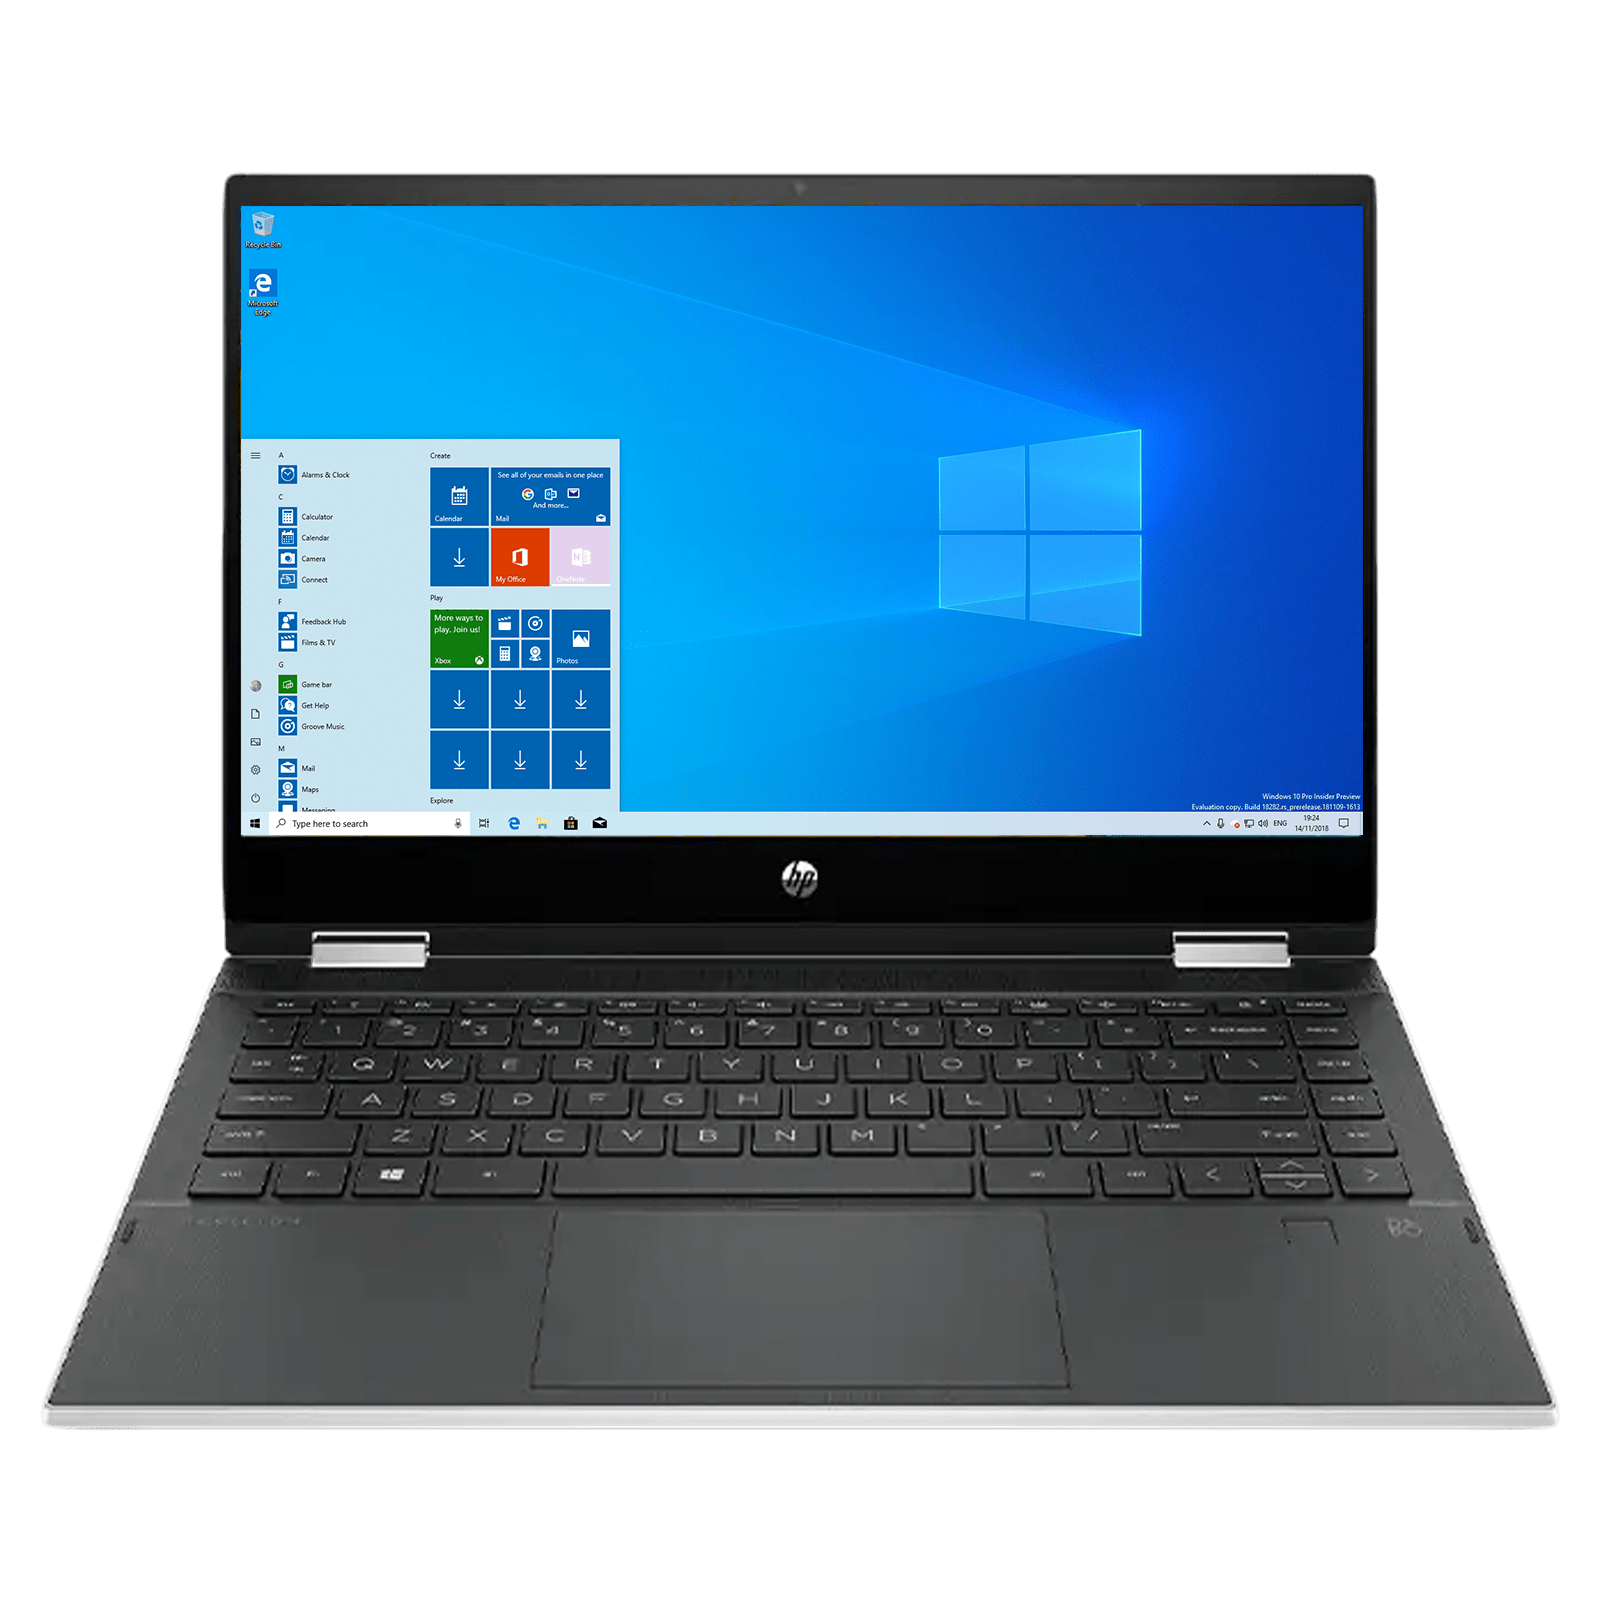 HP Pavilion x360 14-dw1039TU (2R2H6PA#ACJ) Core i5 11th Gen Windows 10 Home 2-in-1 Laptop (8GB RAM, 512GB SSD, Intel Iris Xe Graphics, MS Office, 35.56cm, Natural Silver)